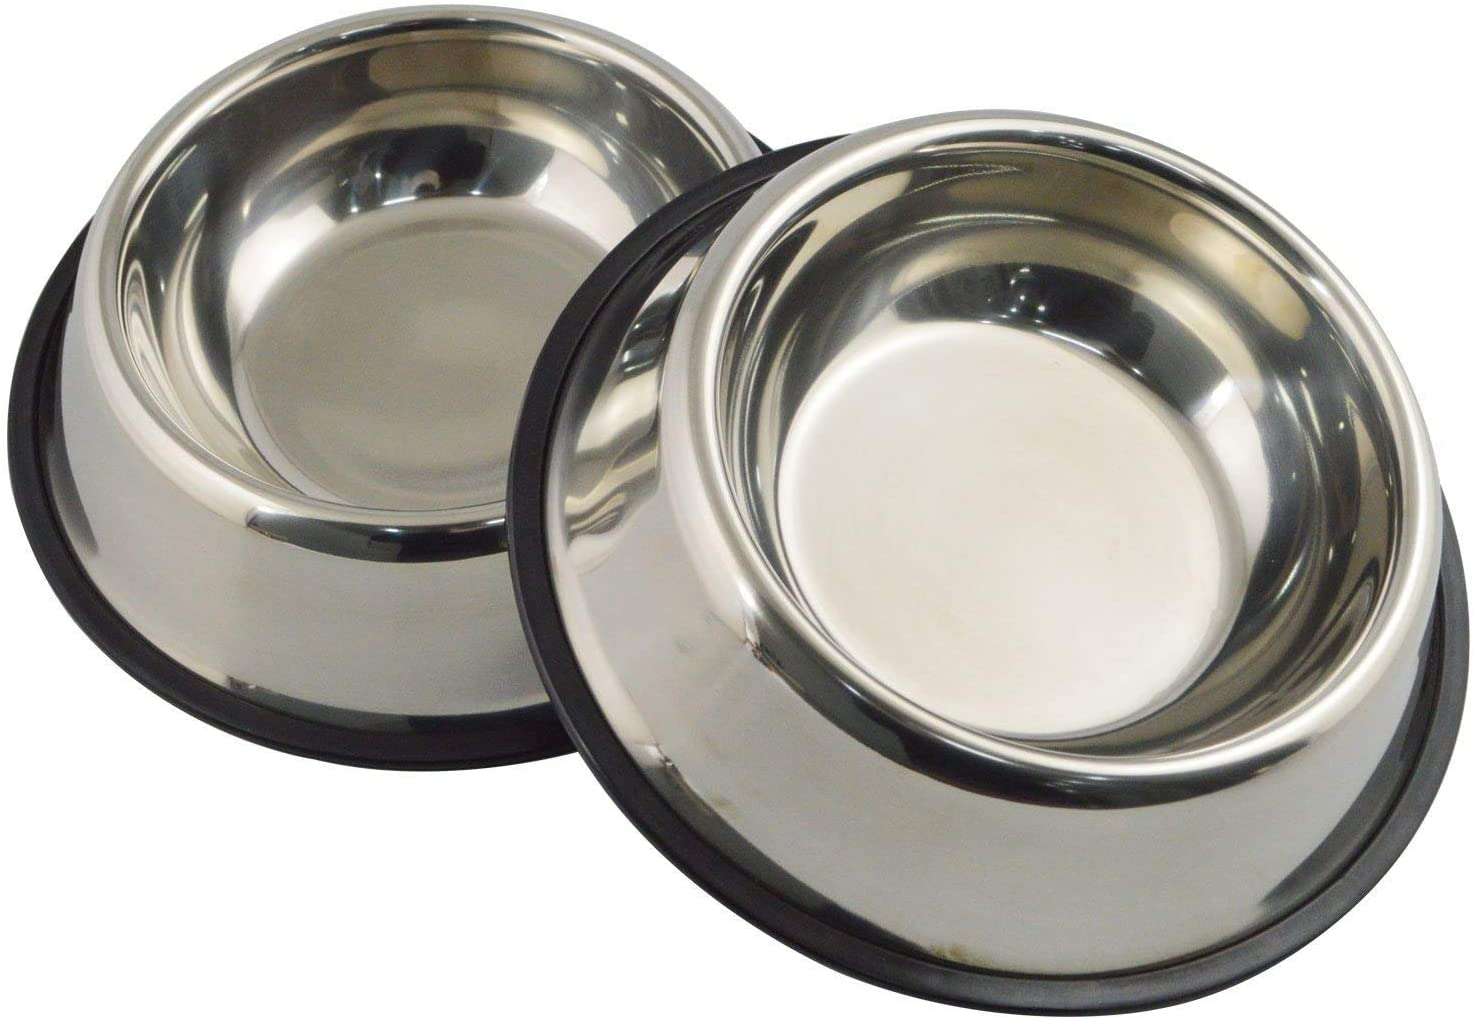 6. Mlife Dog Stainless Steel Water Bowl and Feeder Bowl